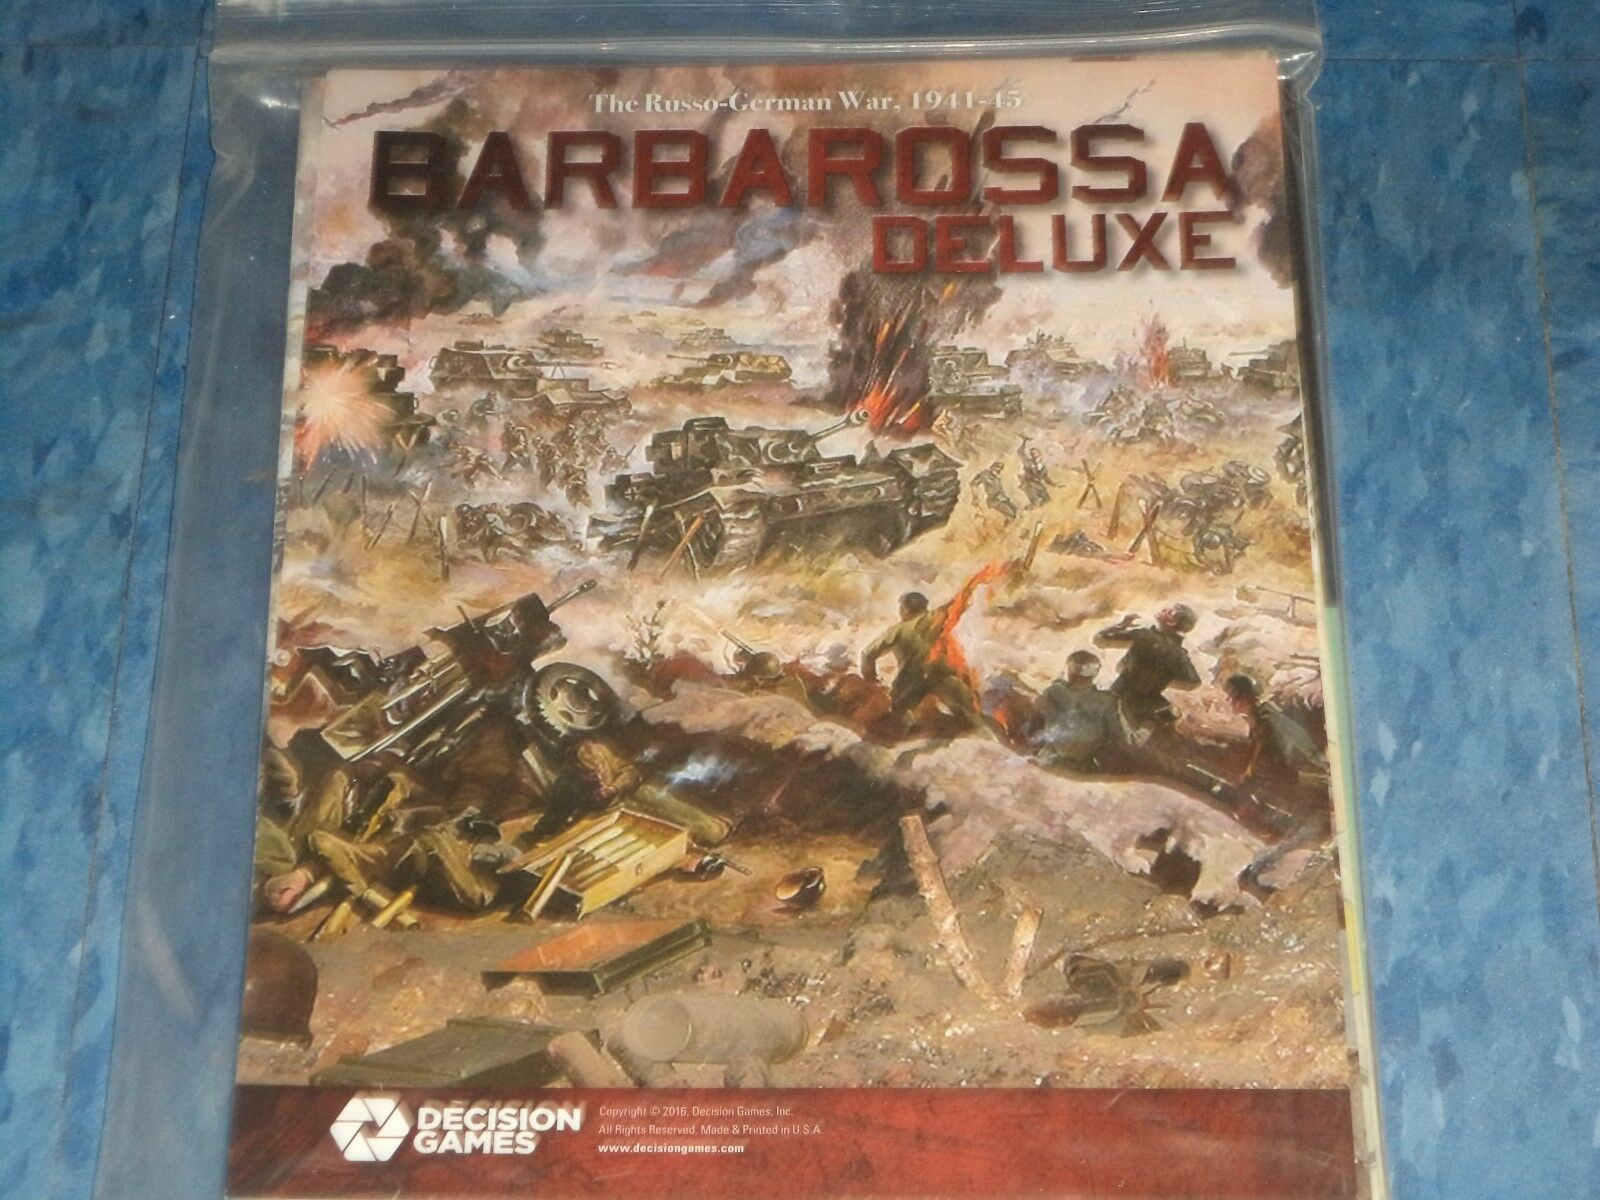 Barbarossa Deluxe Exclusive Edition - Decision Games WWII War Board Game New